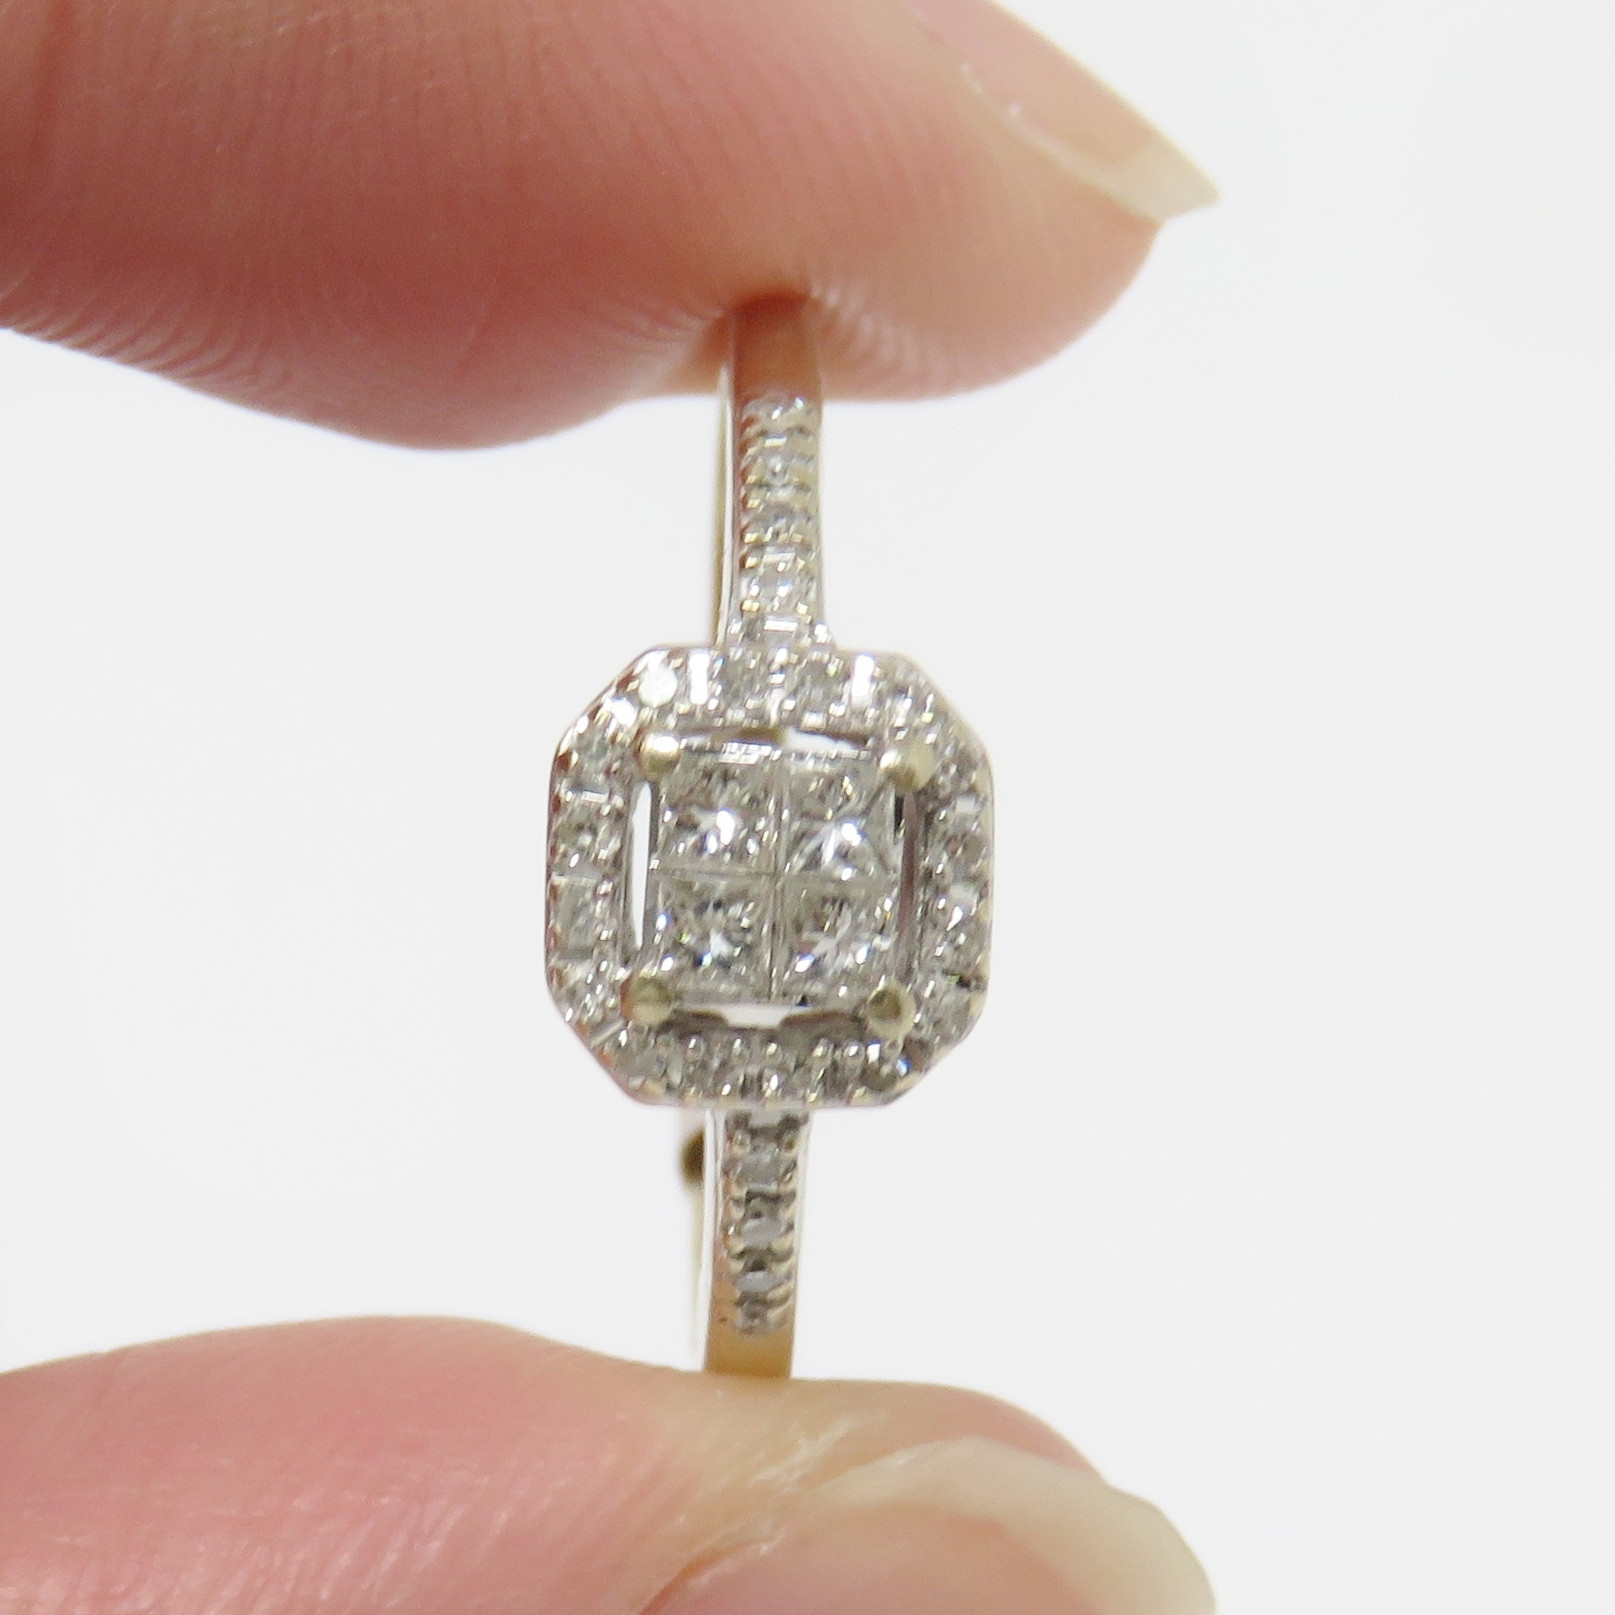 f39e1396f 28 diamonds were tested and are natural, approx 0.45ct TW, G to I, VVS to VS  range. Metal: Solid Gold Marked: 14K Ring size 7 ;Please contact us to  arrange ...